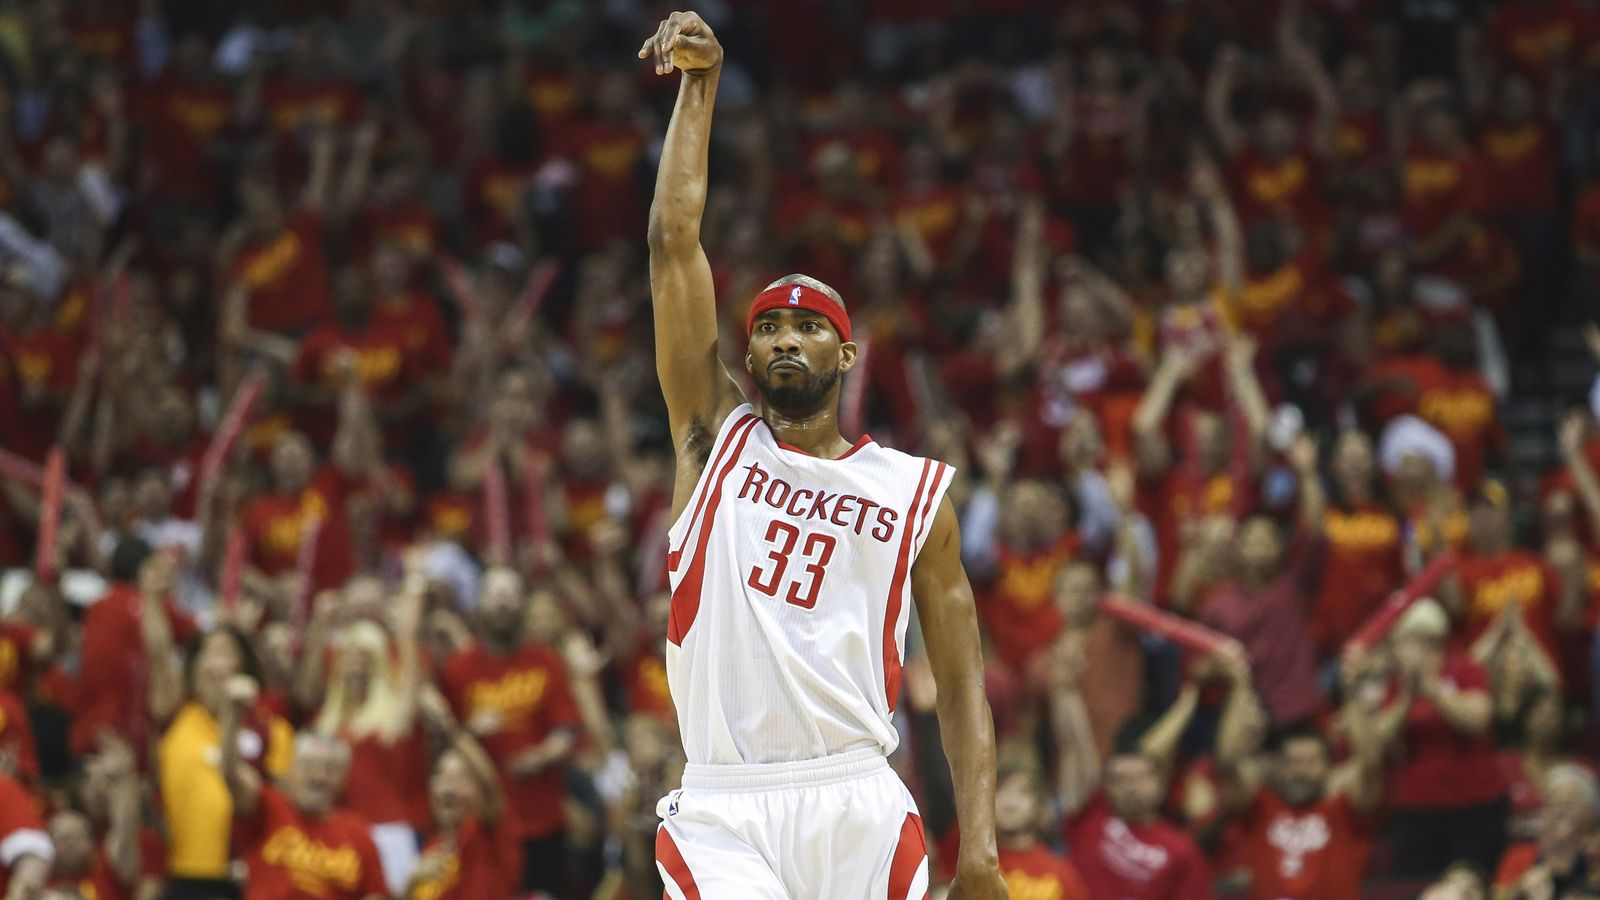 rockets clippers game 7 betting line